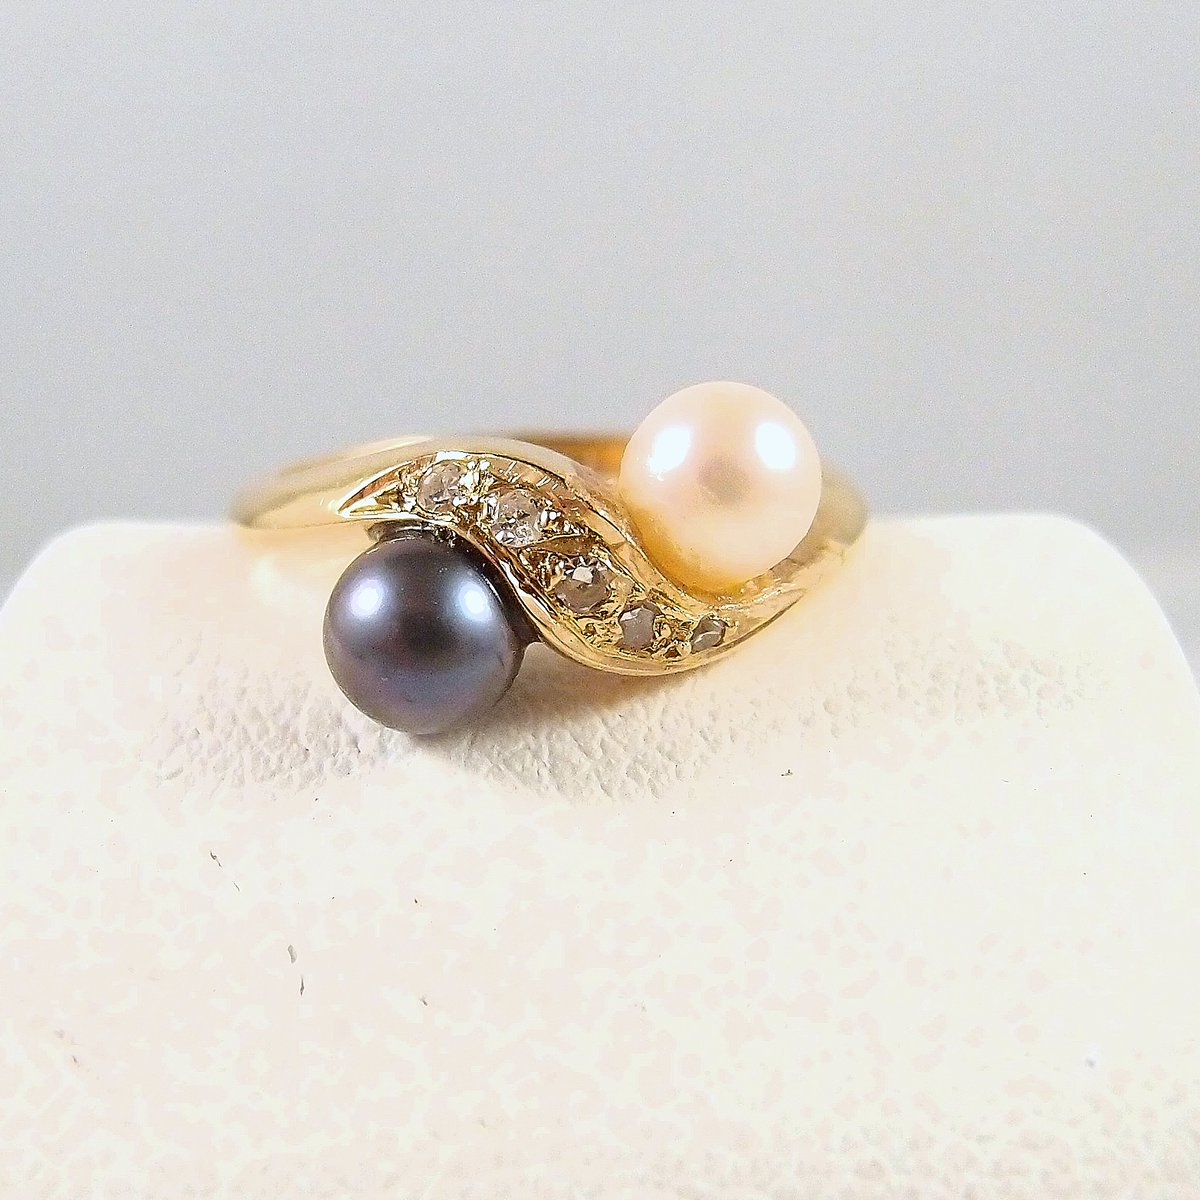 Beautiful crossover natural diamond and pearl ring, stamped 18K French fine gold jewelry, bridal bypass Toi et Moi ring https://midwest-art-objects.com  #pearlsofinstagram pic.twitter.com/CPBheul7nR